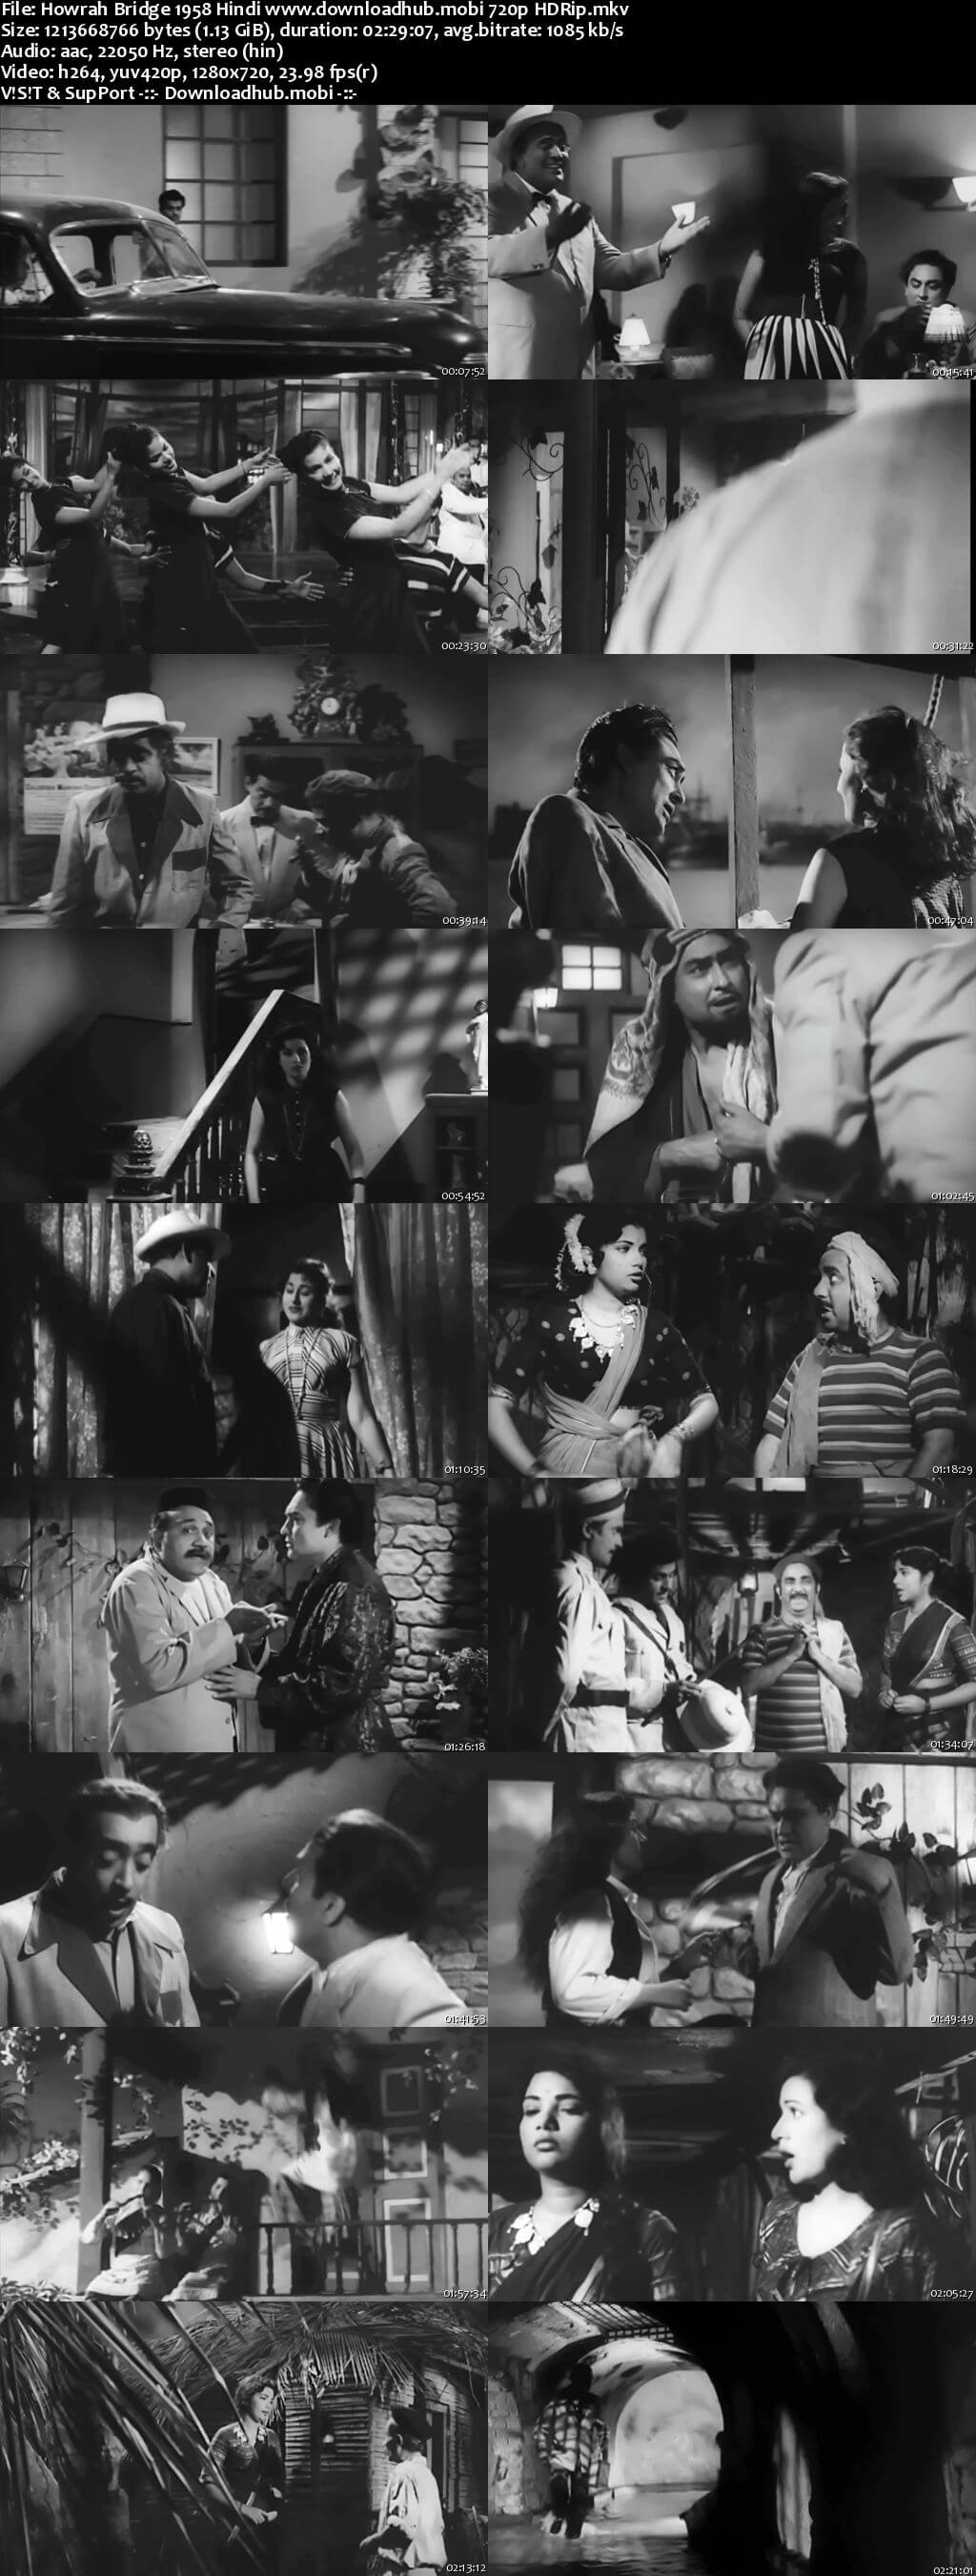 Howrah Bridge 1958 Hindi 720p HDRip x264